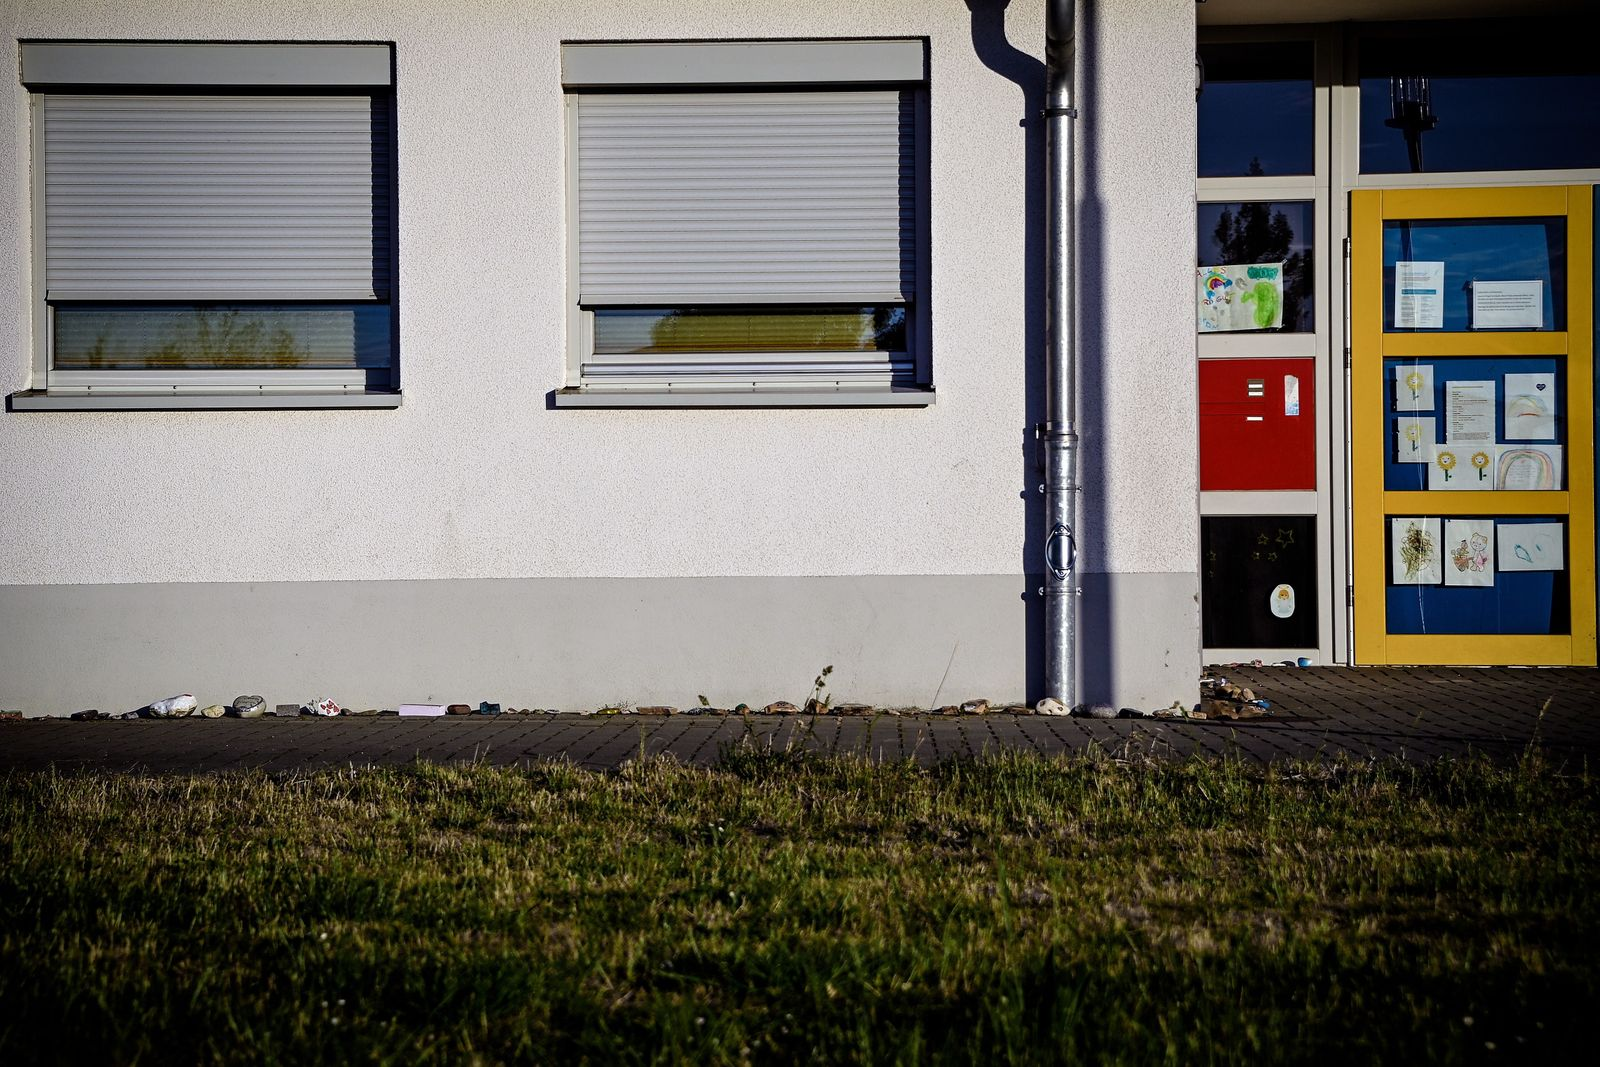 3-year-old girl died in a daycare centre in Viersen, Germany - 28 May 2020